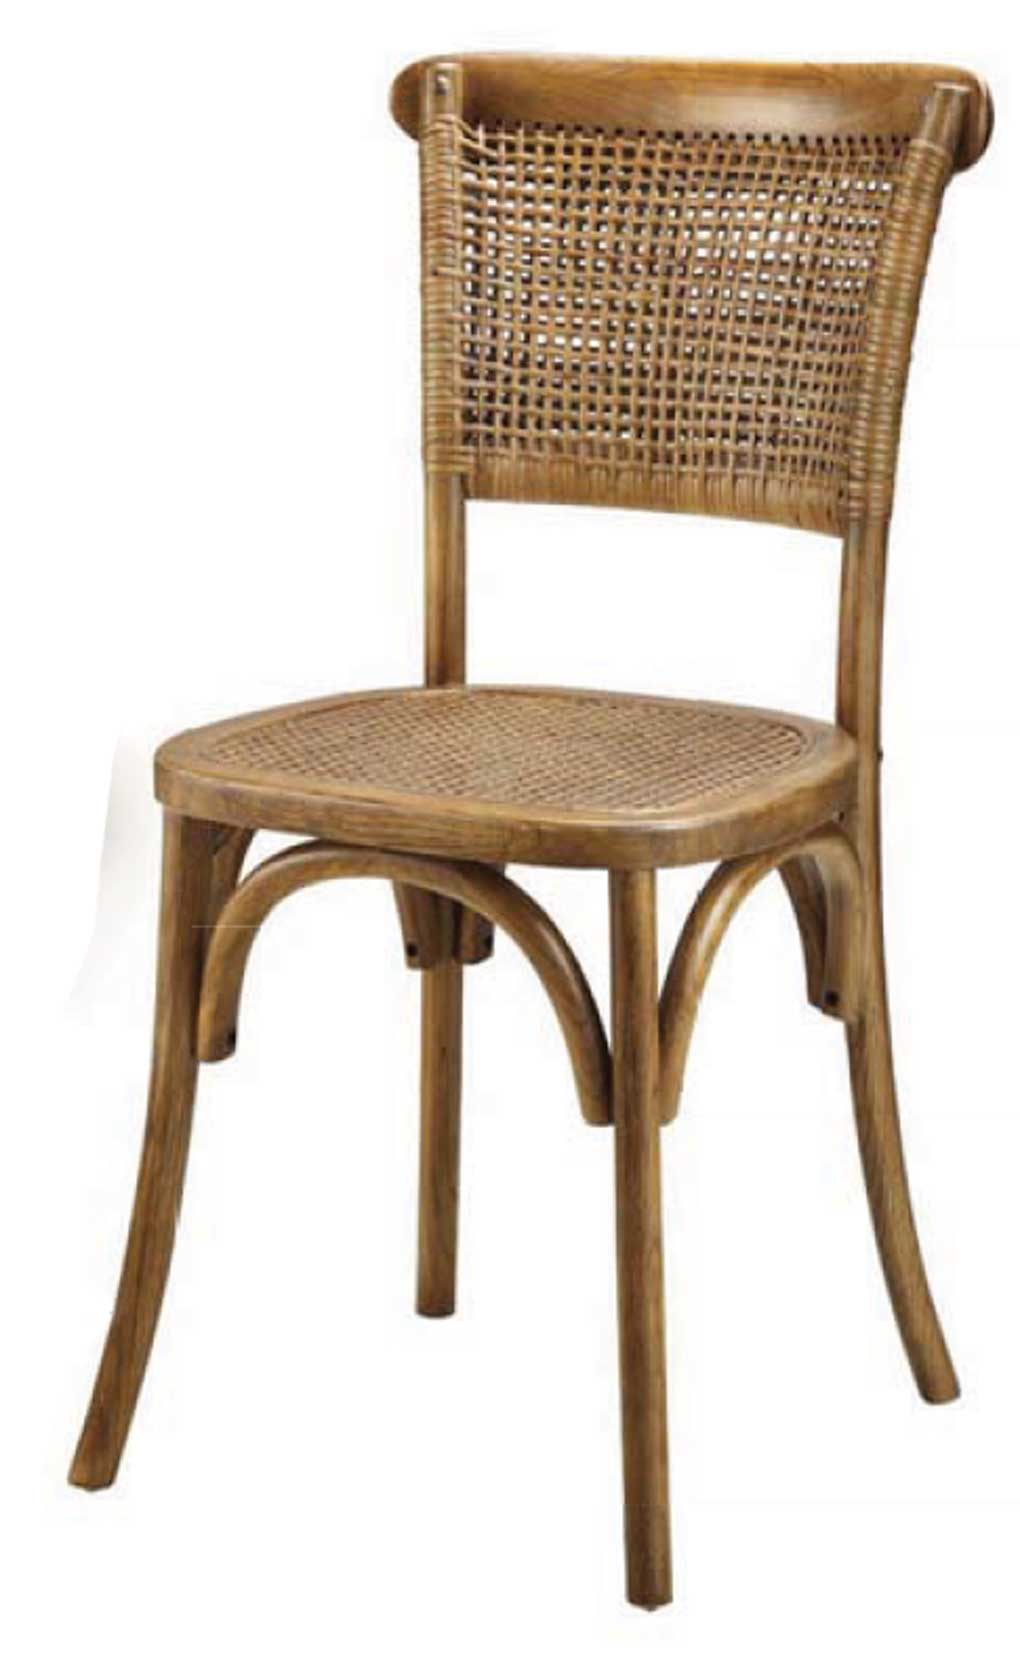 Rattan style wood dining chair.